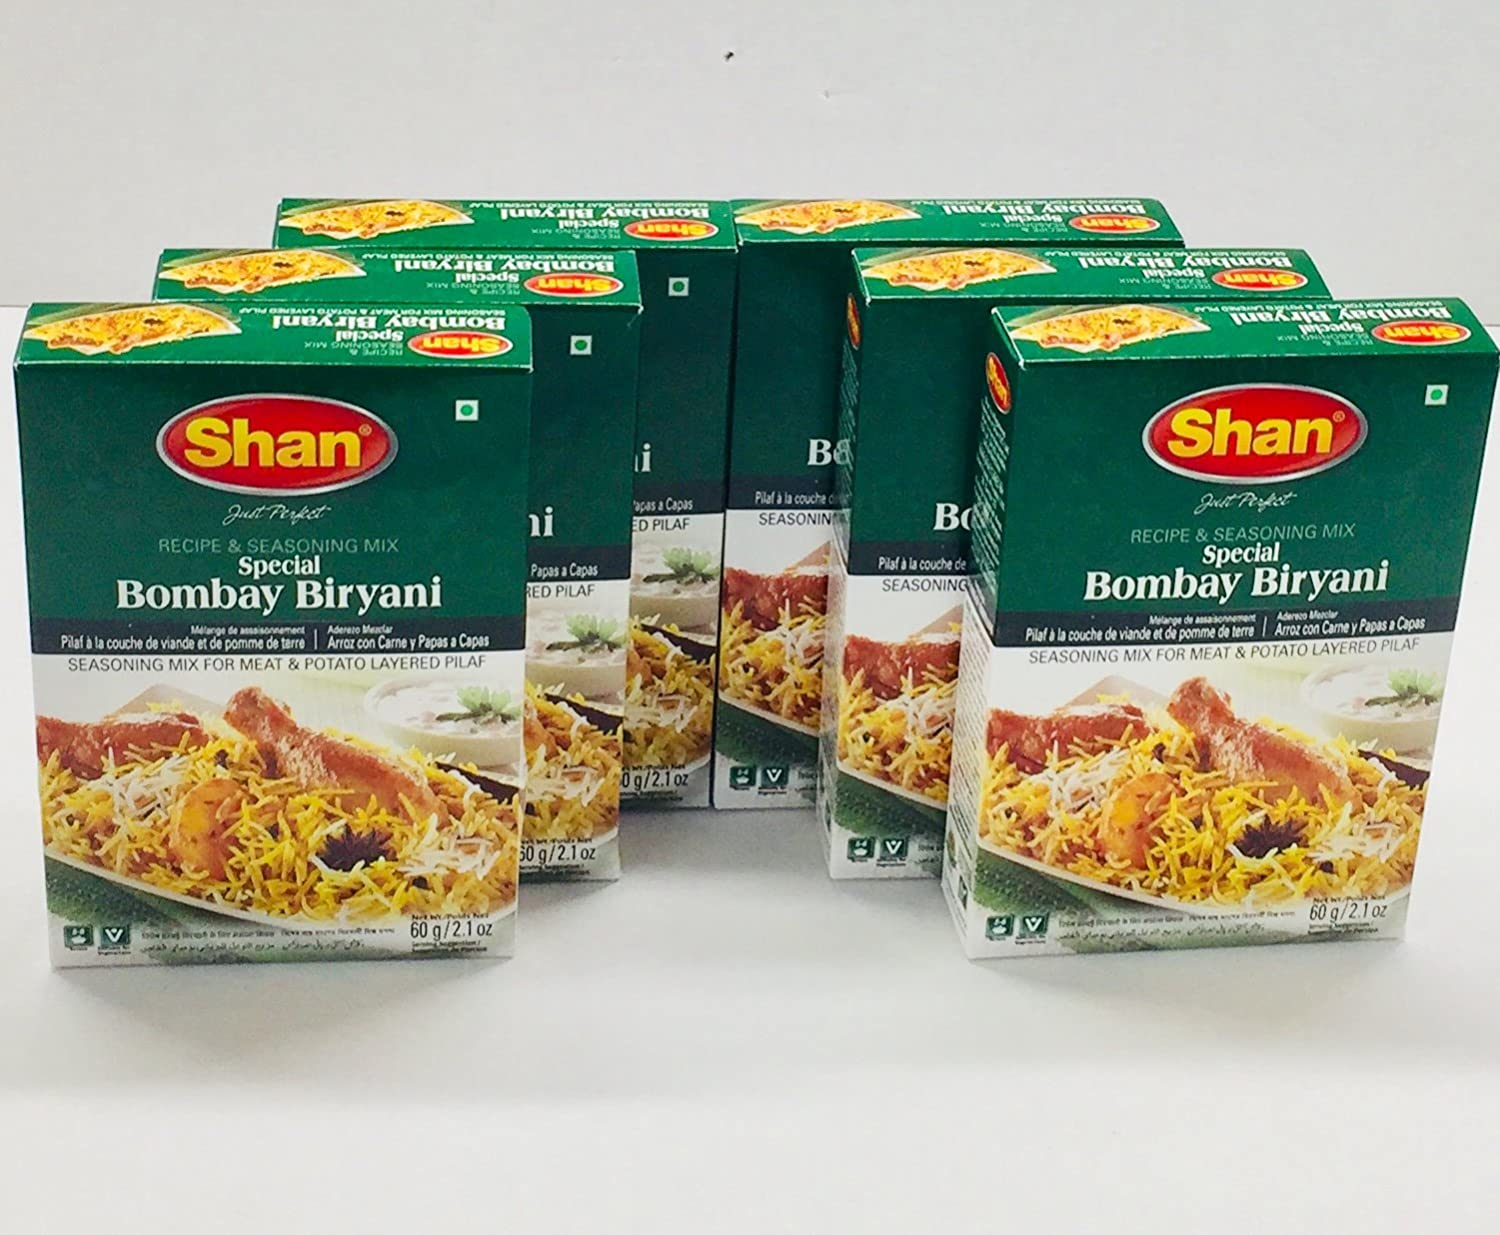 Shan Premium Special Bombay Biryani Masala Recipe And Seasoning Mix, Indian Food Spices, 2.1oz/60g(Pack of 6)